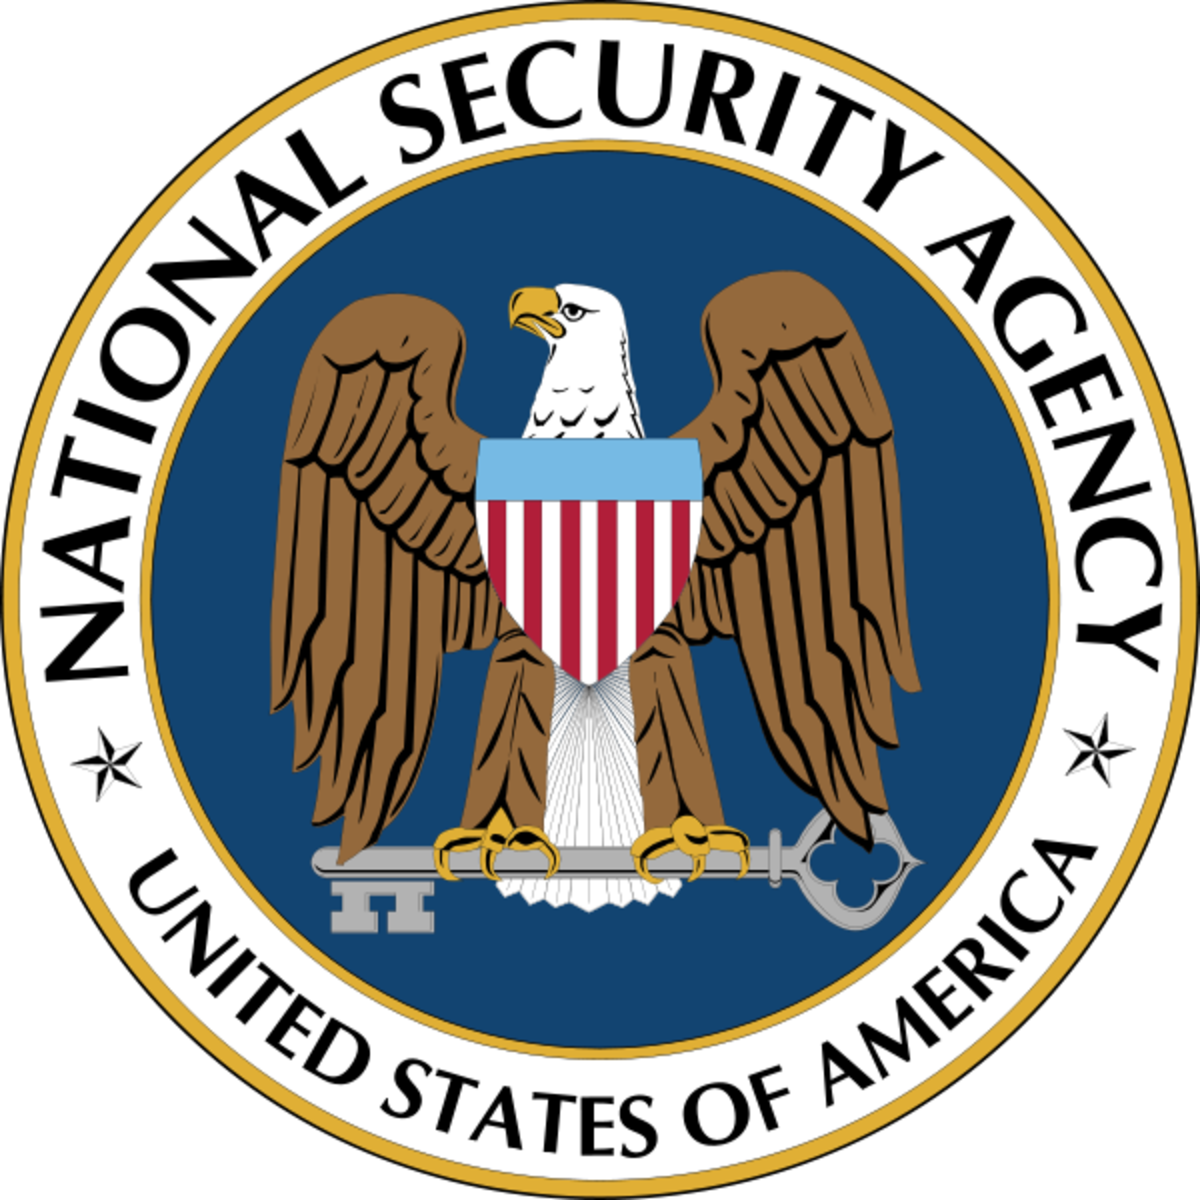 we do care about national security but not to the extent it's been portrayed under Bush administration.